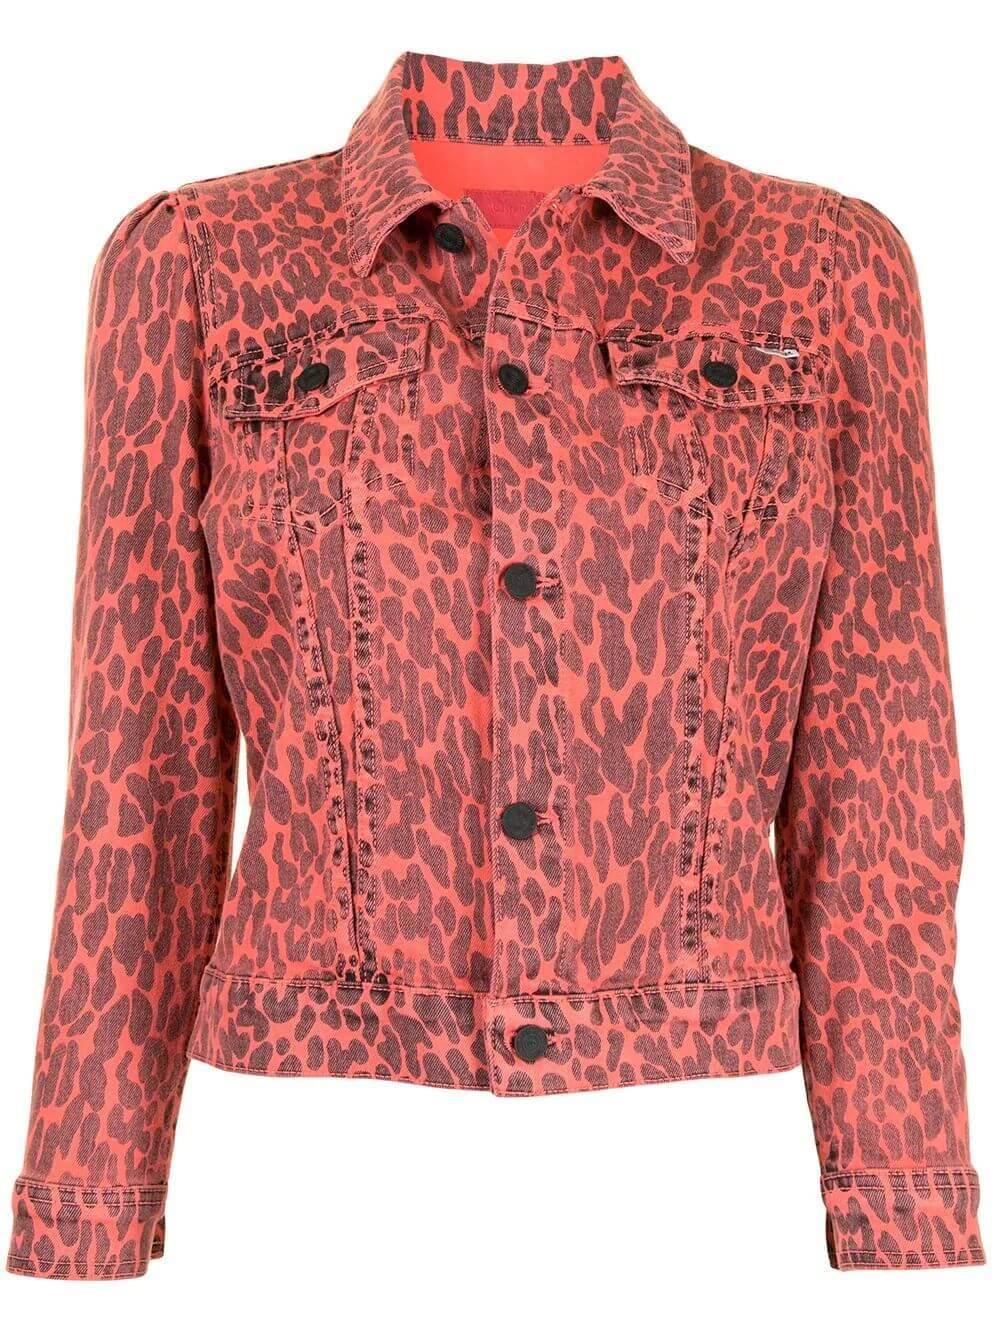 The Puffy Bruiser Leopard Denim Jacket Item # 30031-900